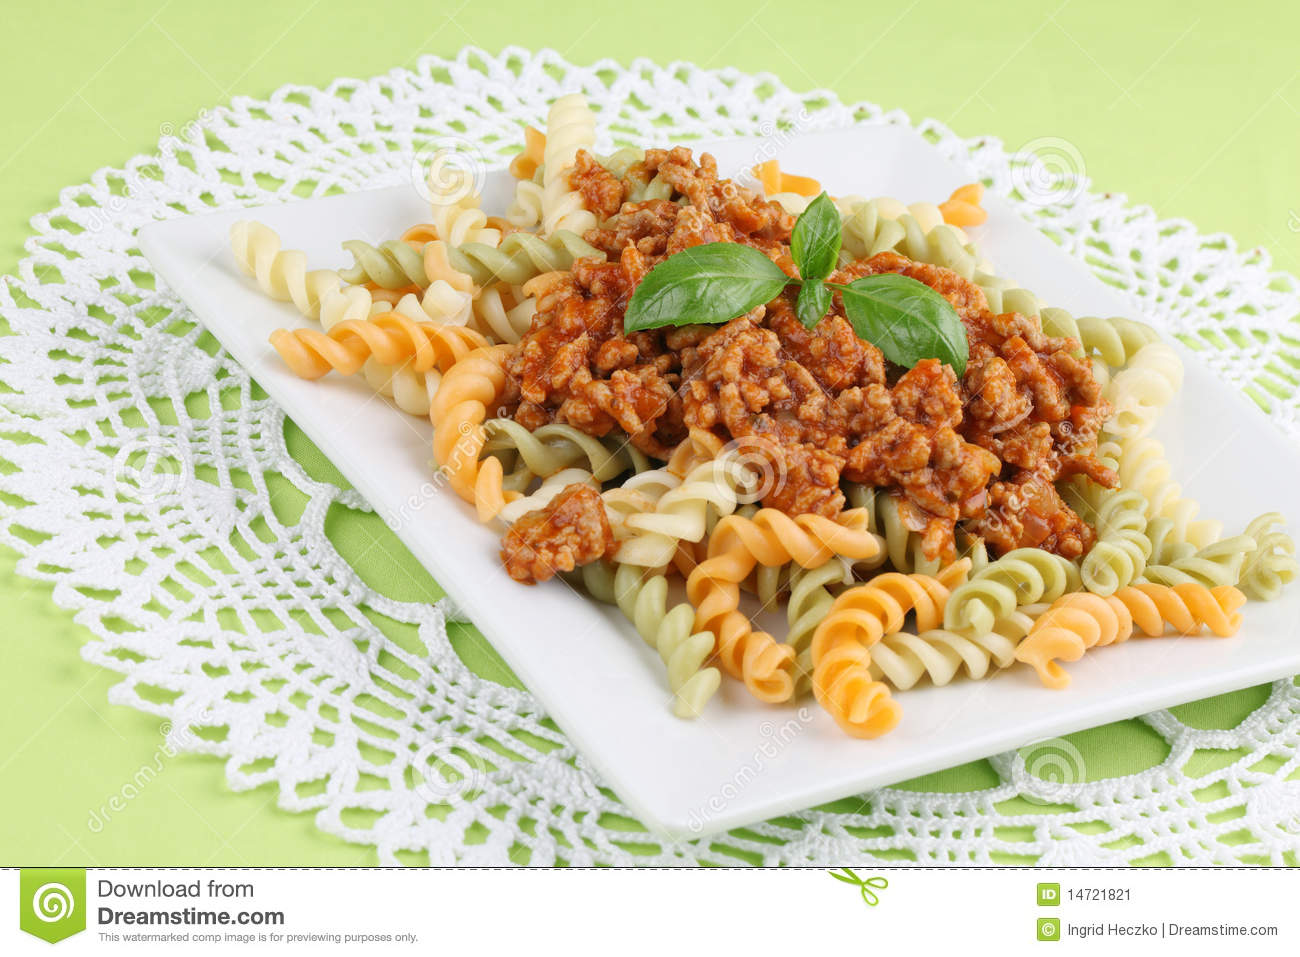 how to cook minced meat with tomato sauce